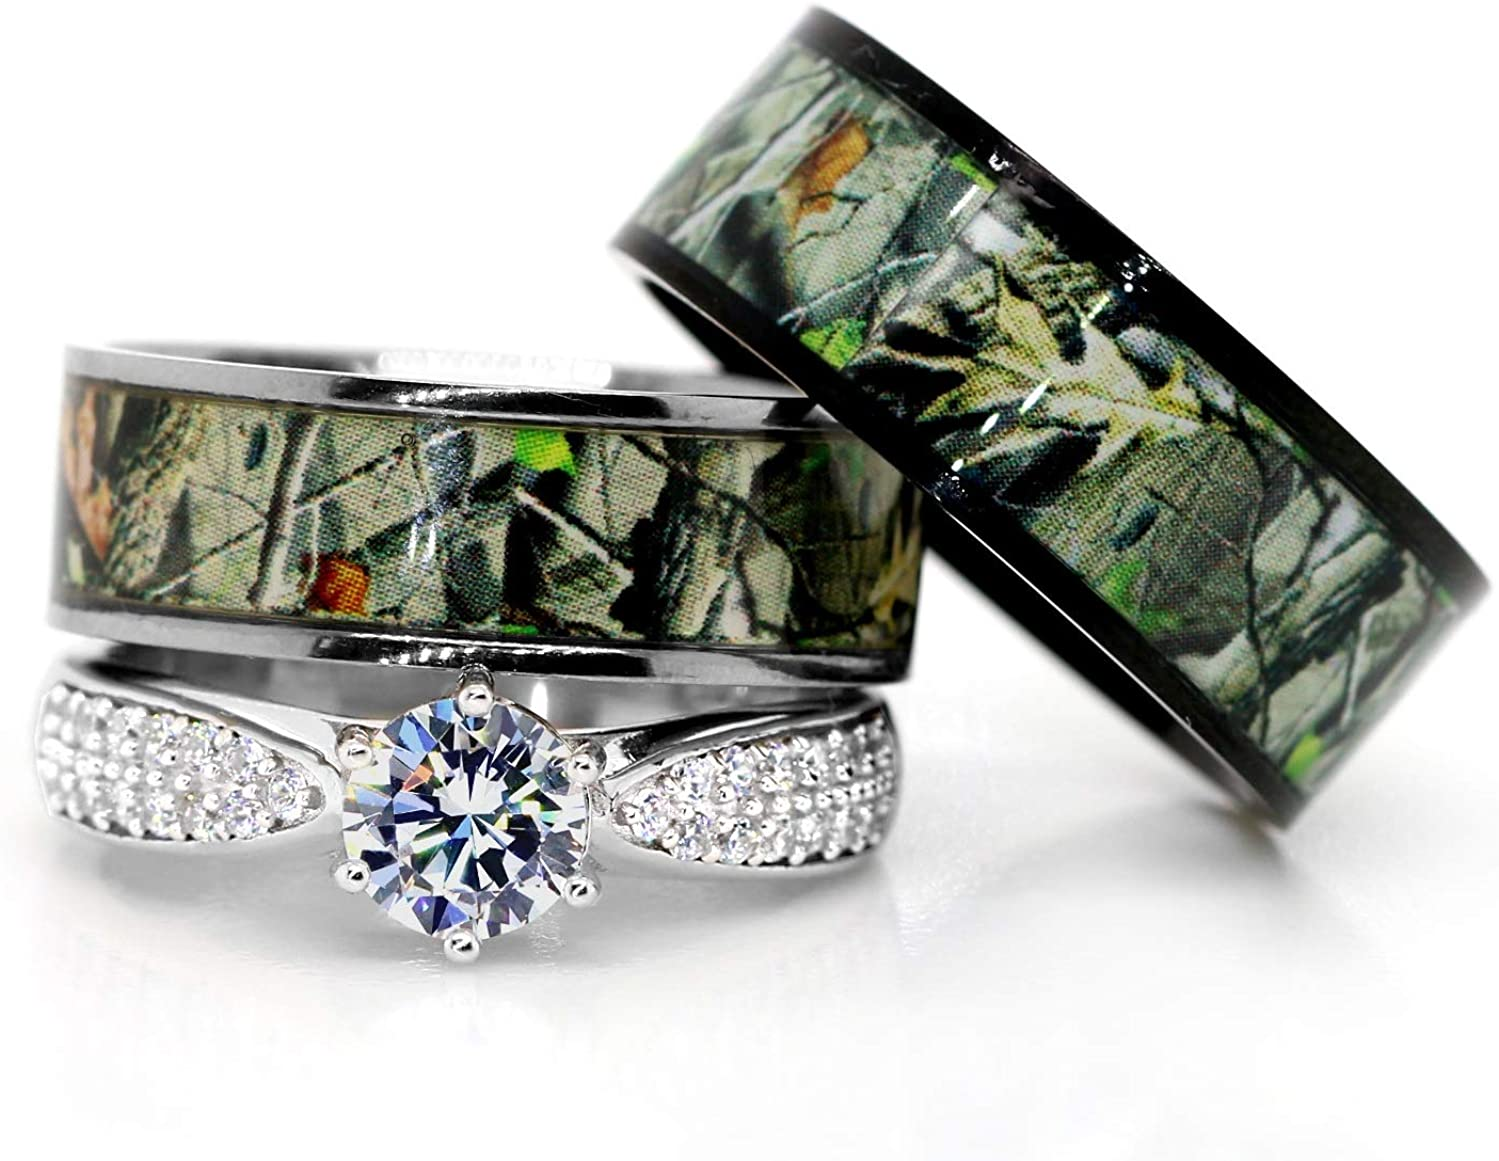 Kingsway Jewelry Mens & Womens Camo Engagement Wedding Rings Set Silver & Titanium